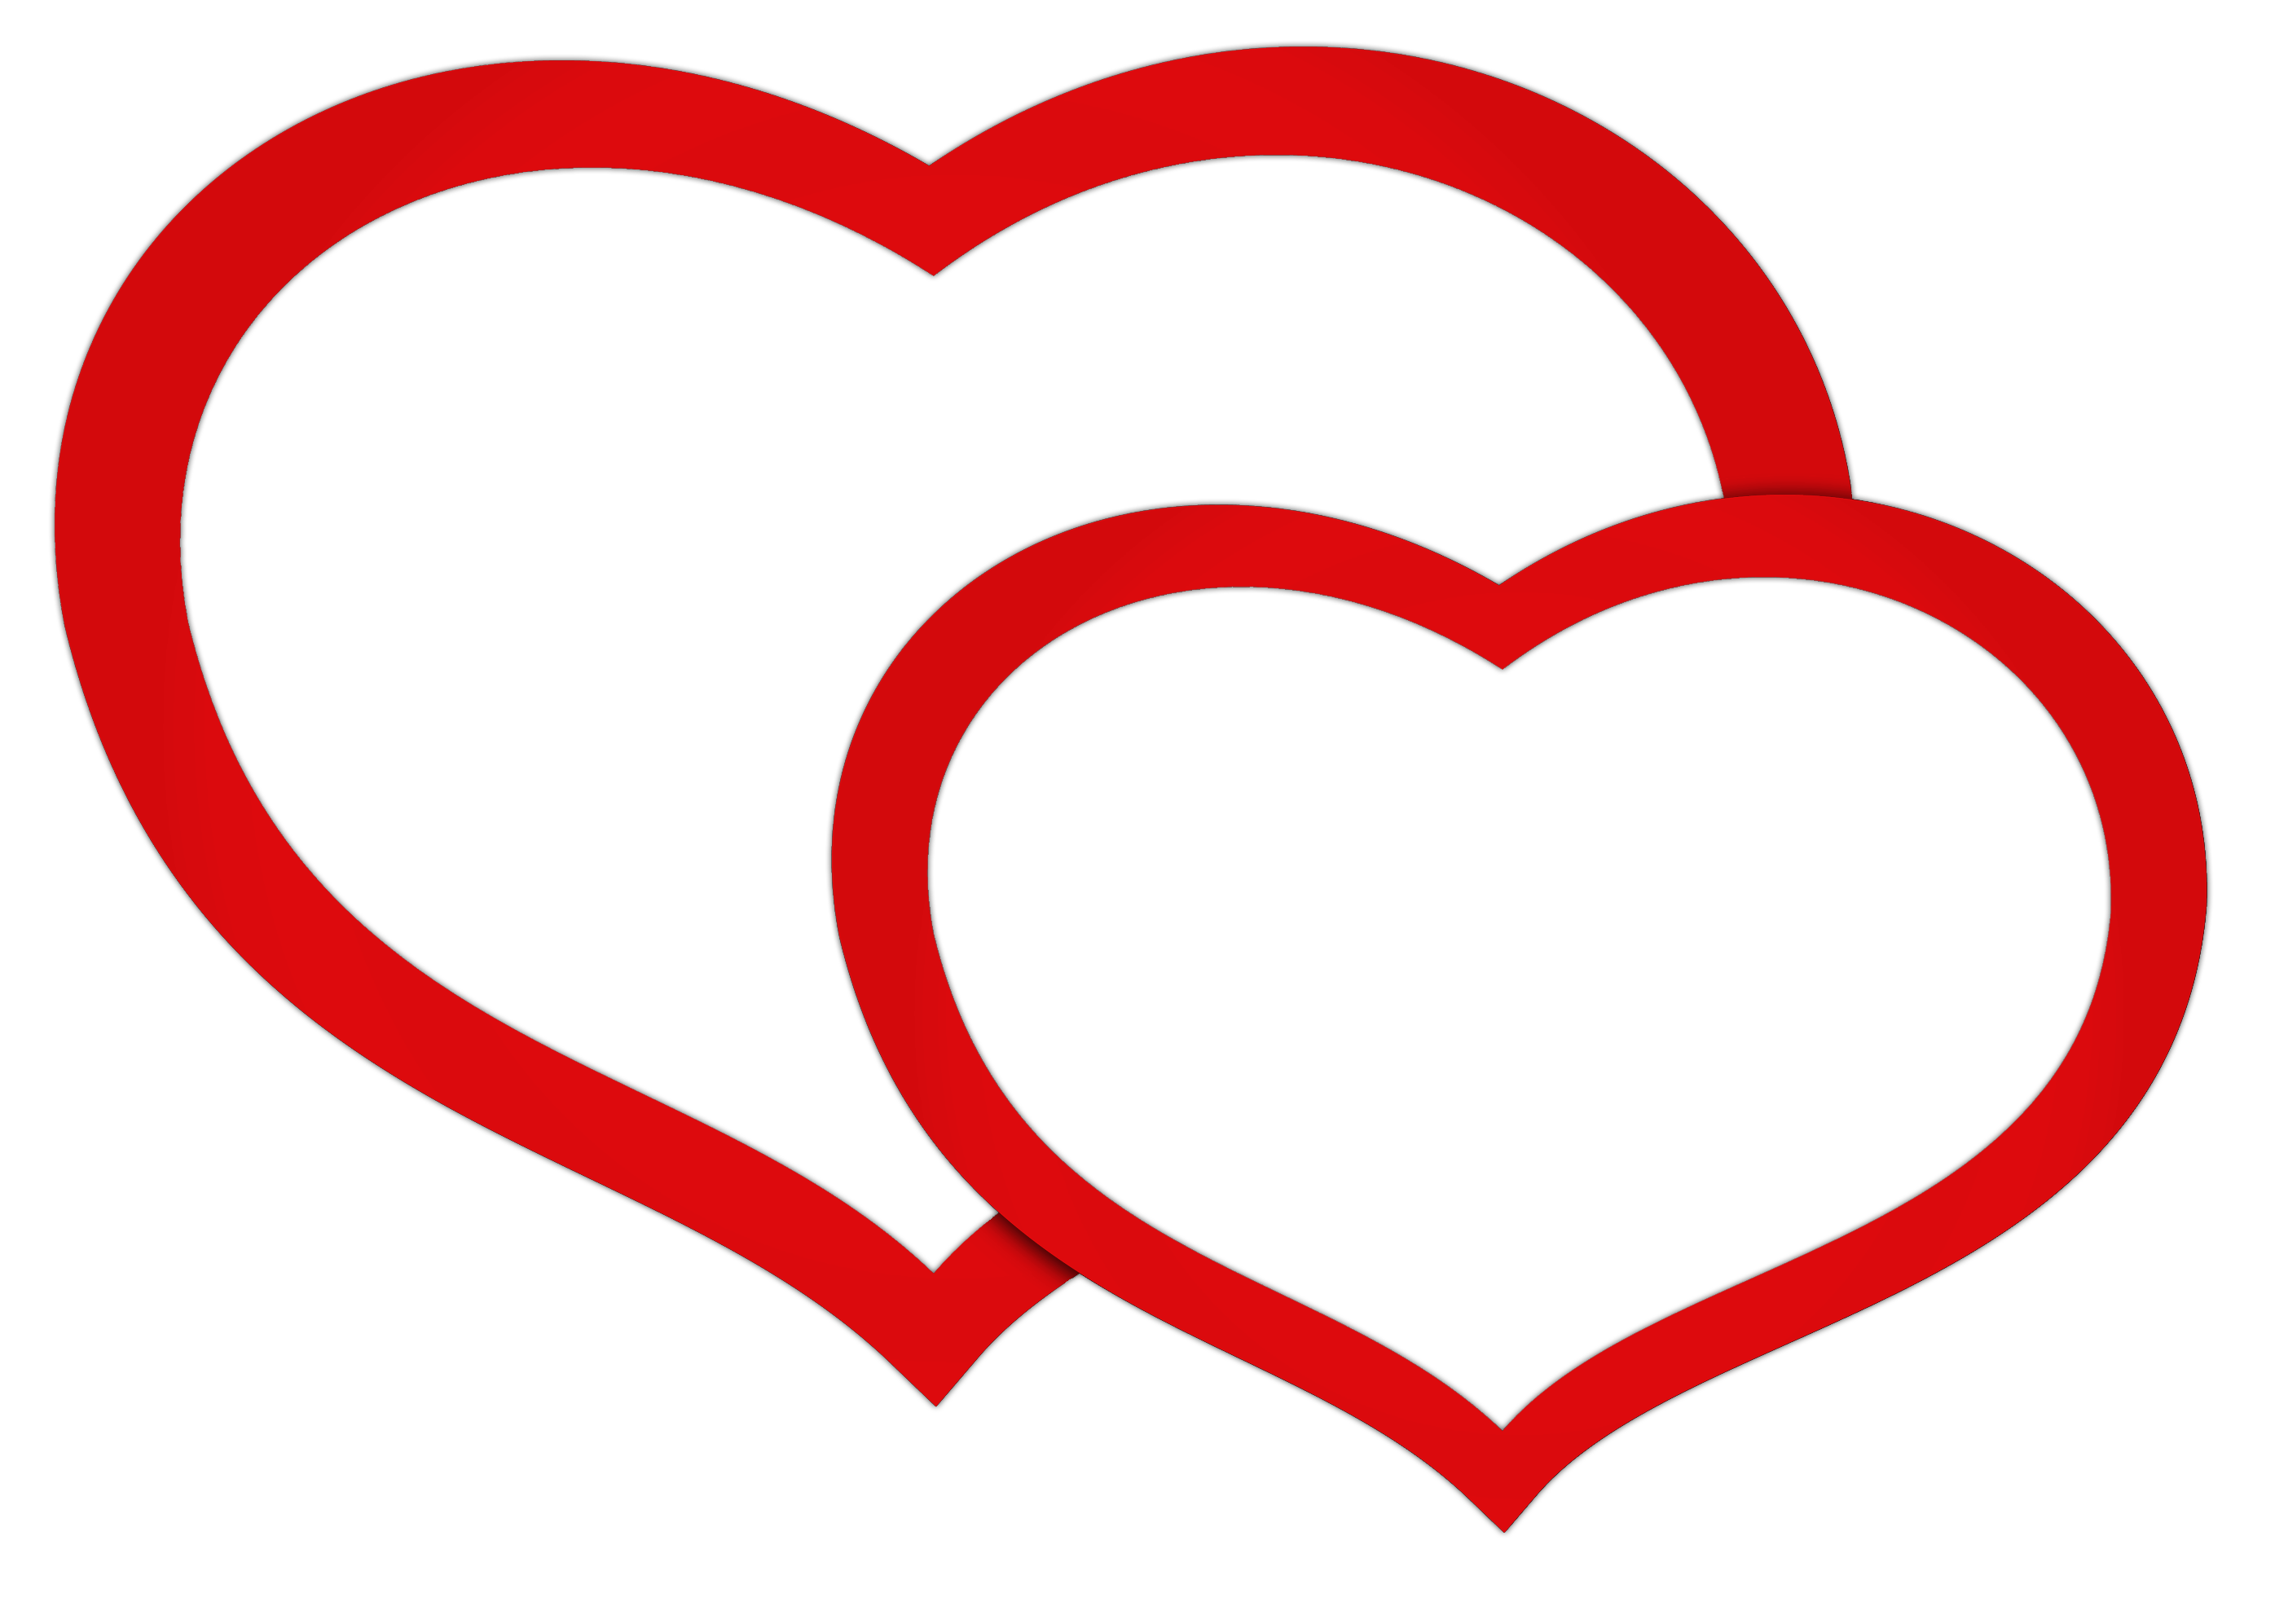 Double heart clipart images.